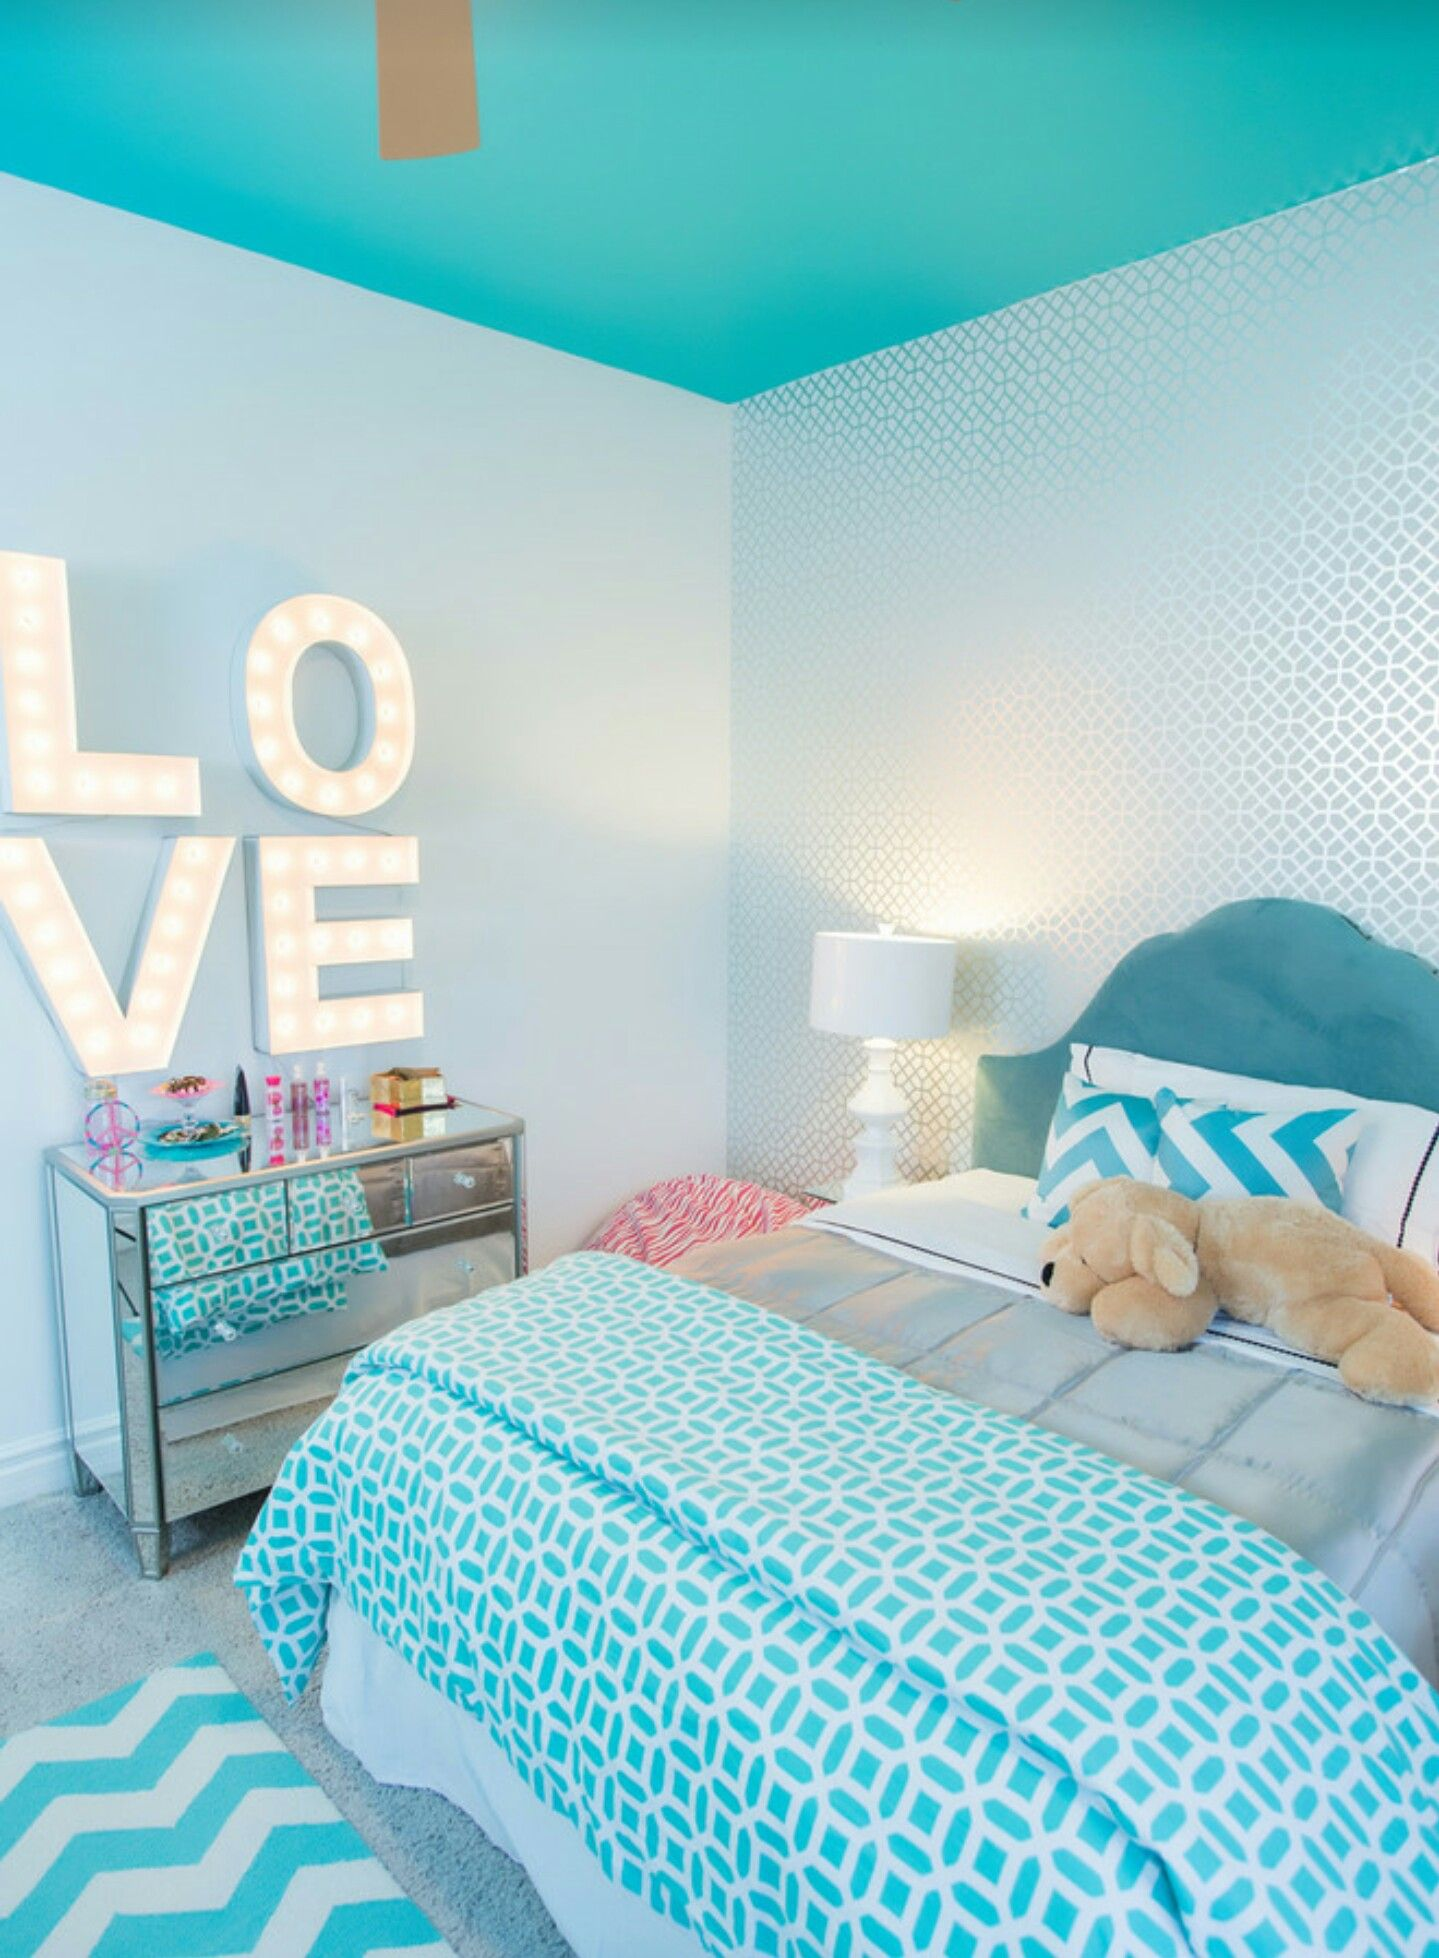 Love y la cajonera gala1 pinterest turquoise for Turquoise bedroom decor